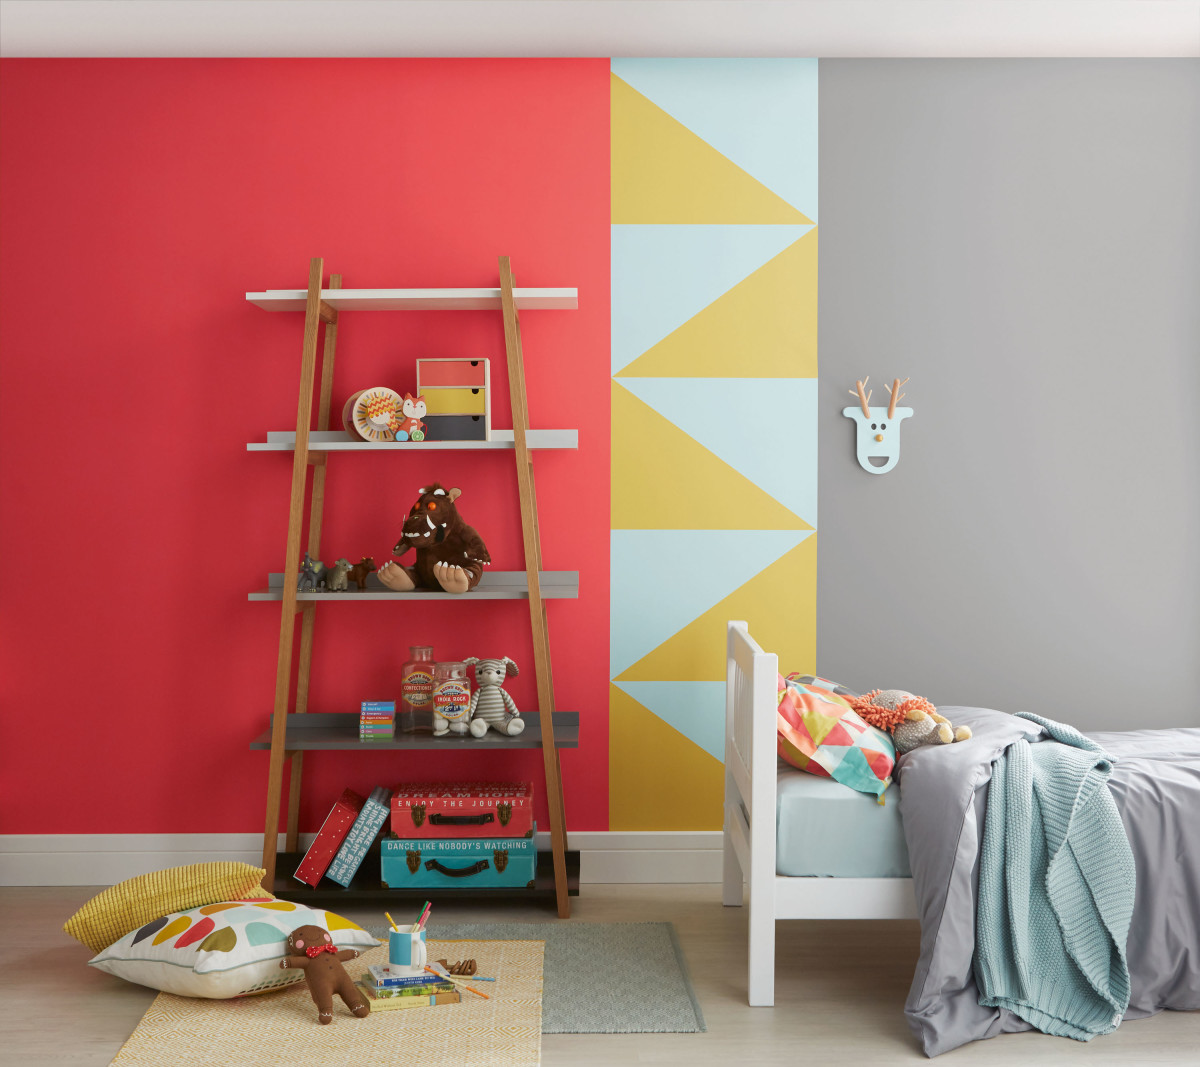 A children's bedroom looks great with red, white, and yellow walls. Add triangles into the design to bring out fire energy.